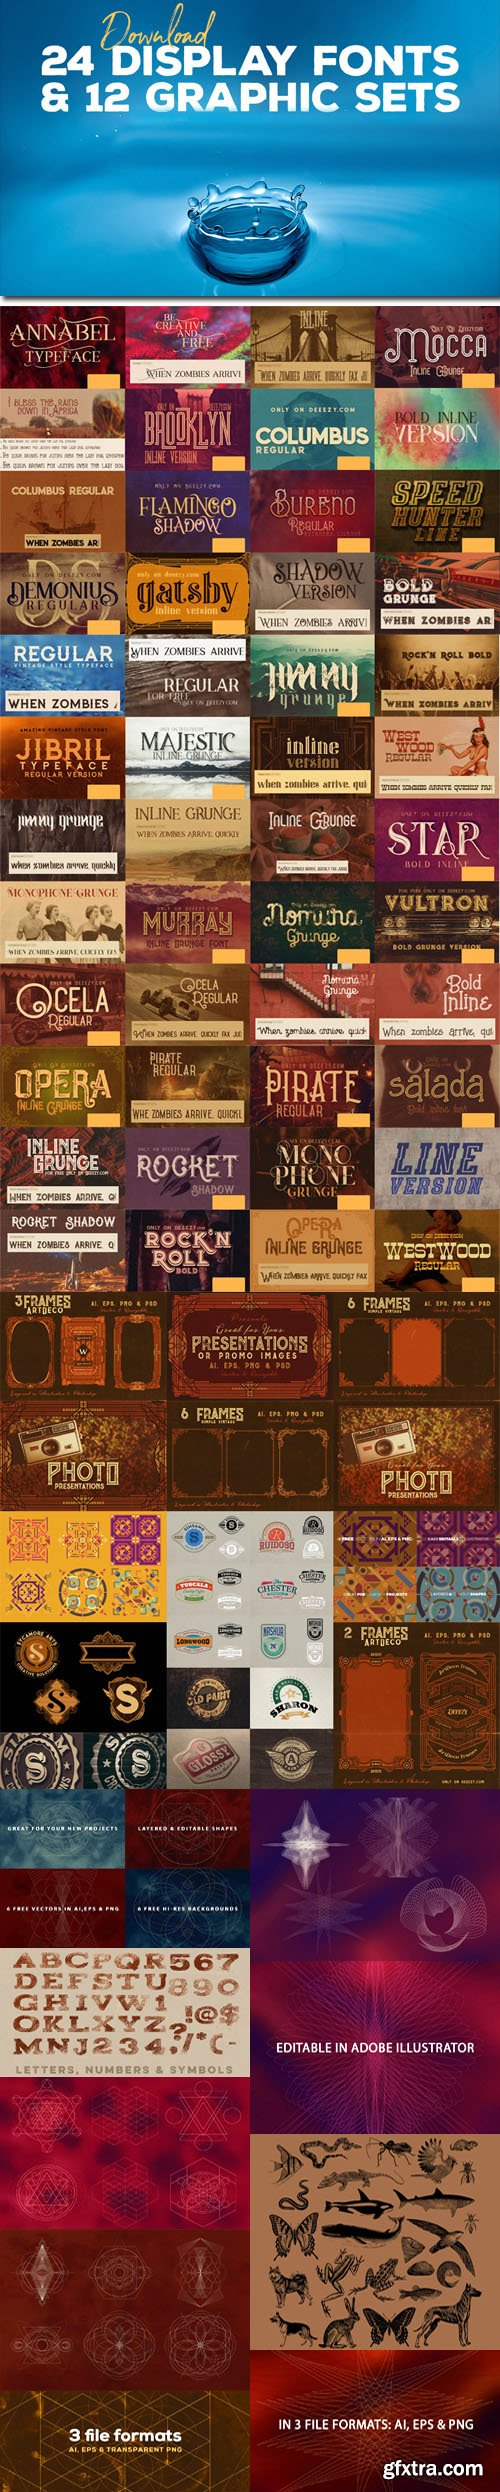 Awesome Bundle : 24 Creative Display Fonts + 12 Various Graphics Sets !